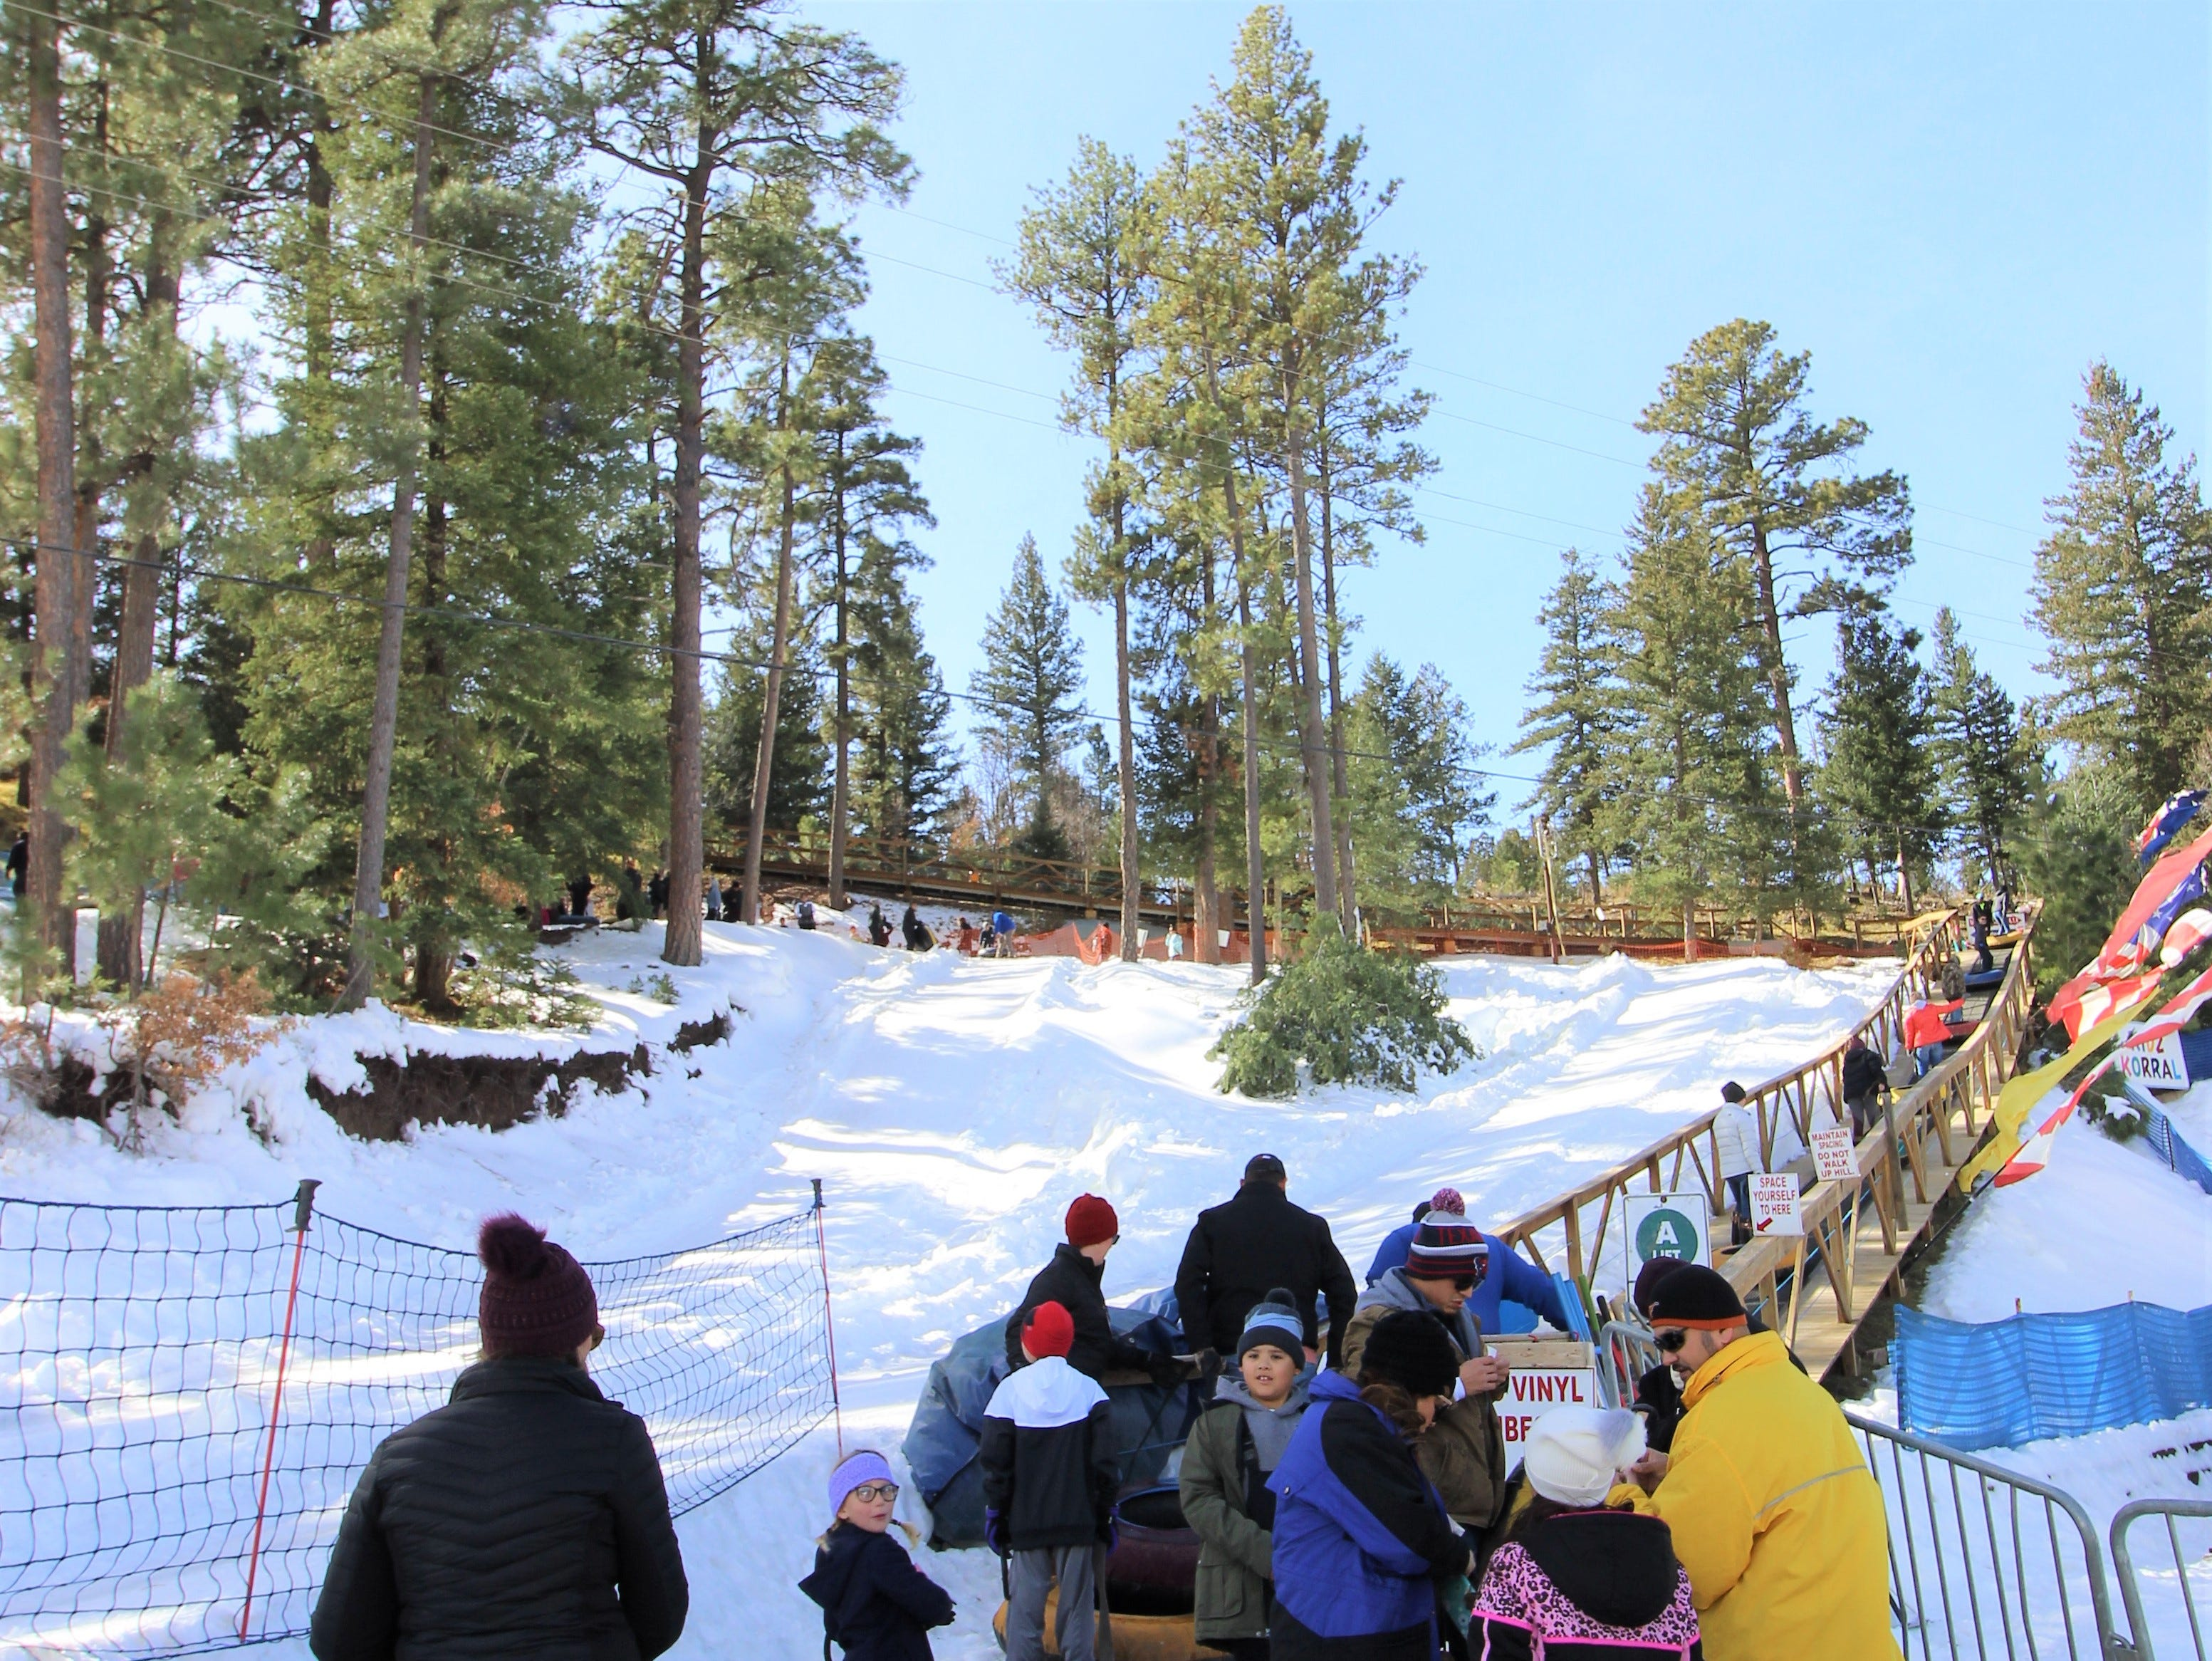 The lines may be long, but it do not stop any of these snow tubing enthusiasts from waiting for their turn to take a thrilling ride down the snow-covered hill.